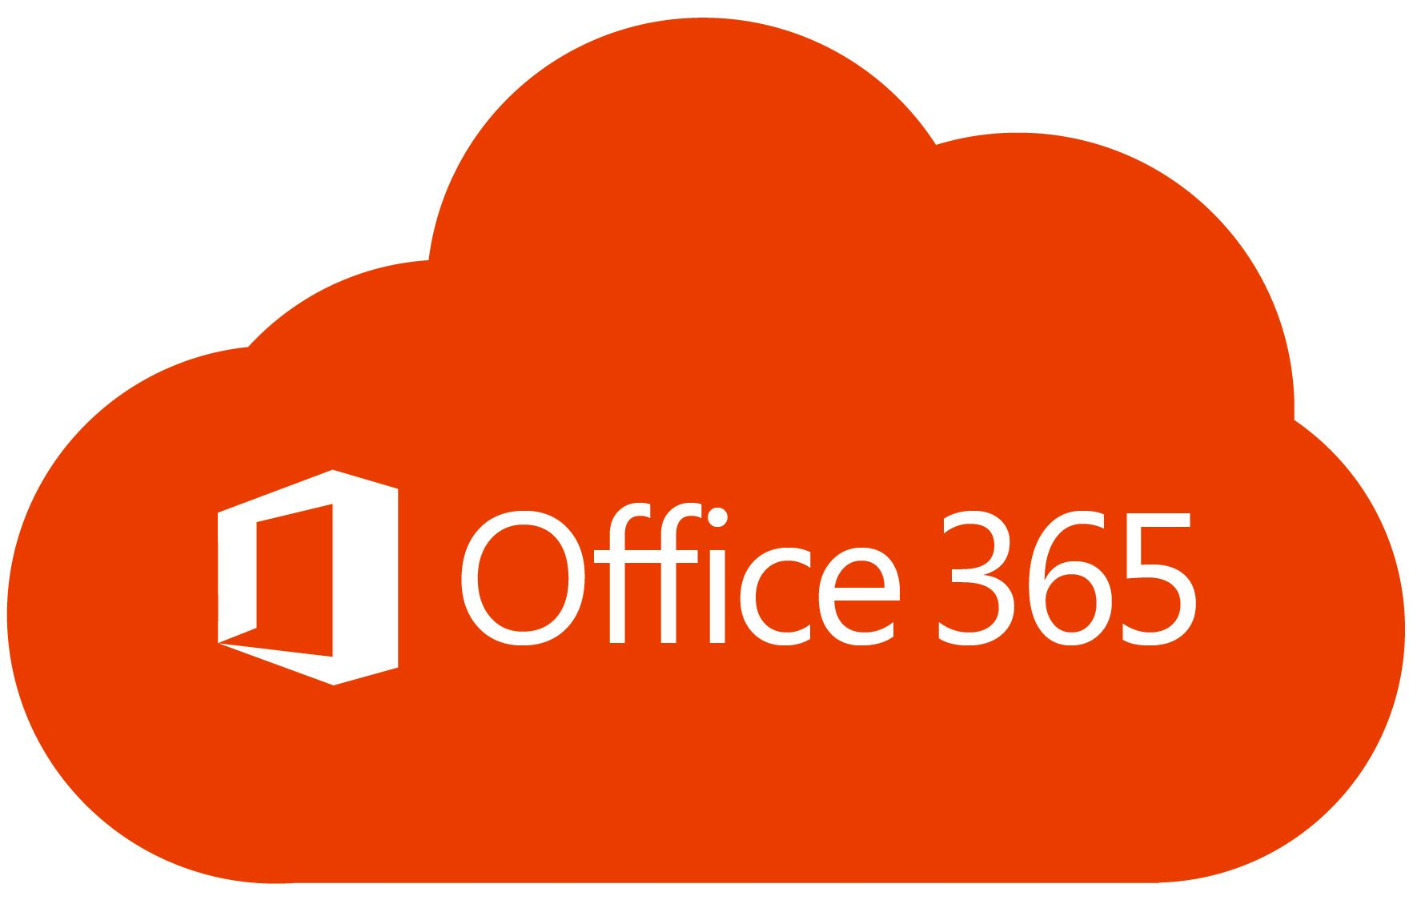 Office account – Office 365 Office 2019